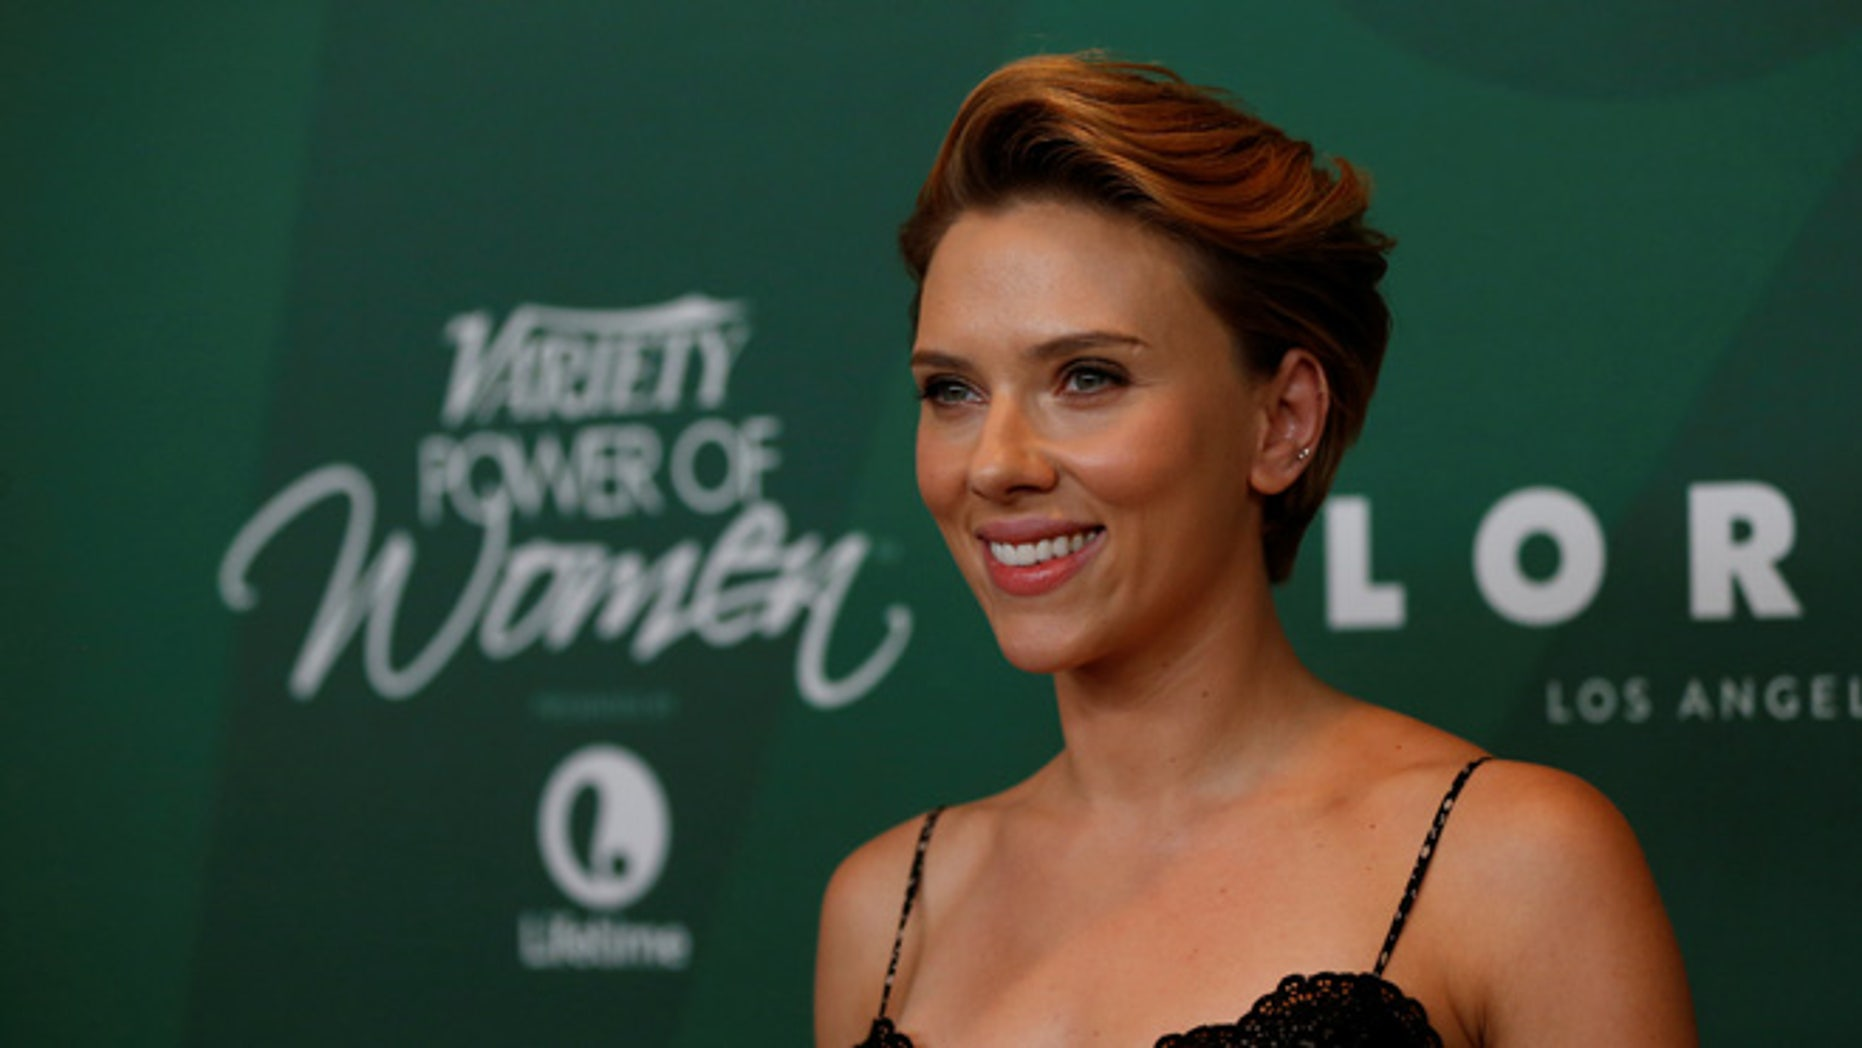 Scarlett Johansson at Variety's Power of Luncheon in Beverly Hills on October 14, 2016.